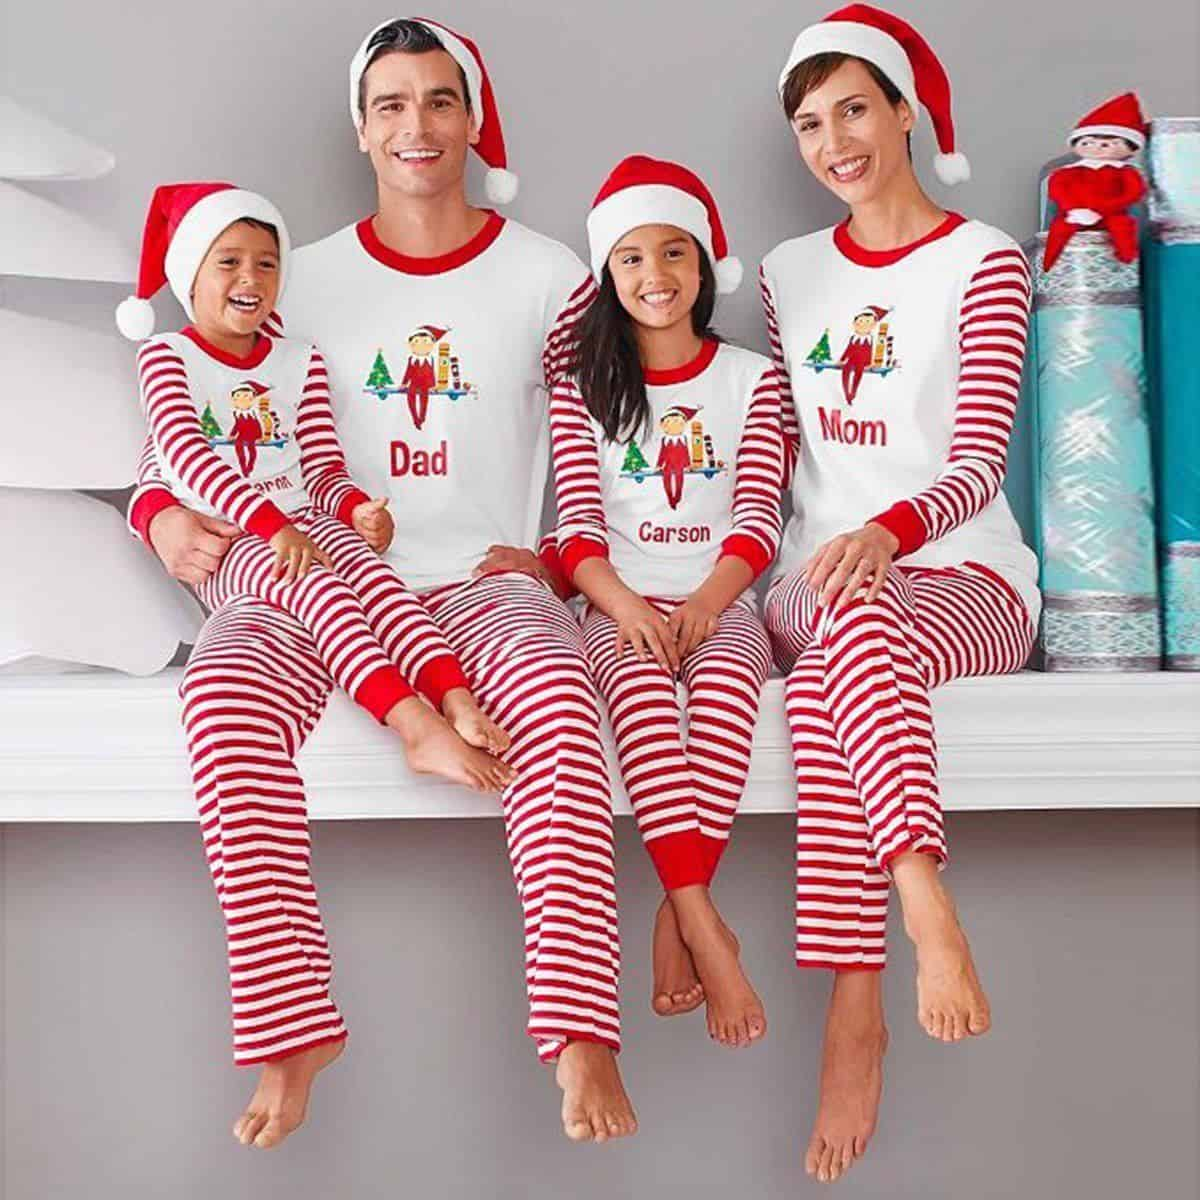 deb351a508fd 15 of the Best Matching Family Christmas Pajamas - DIY Candy